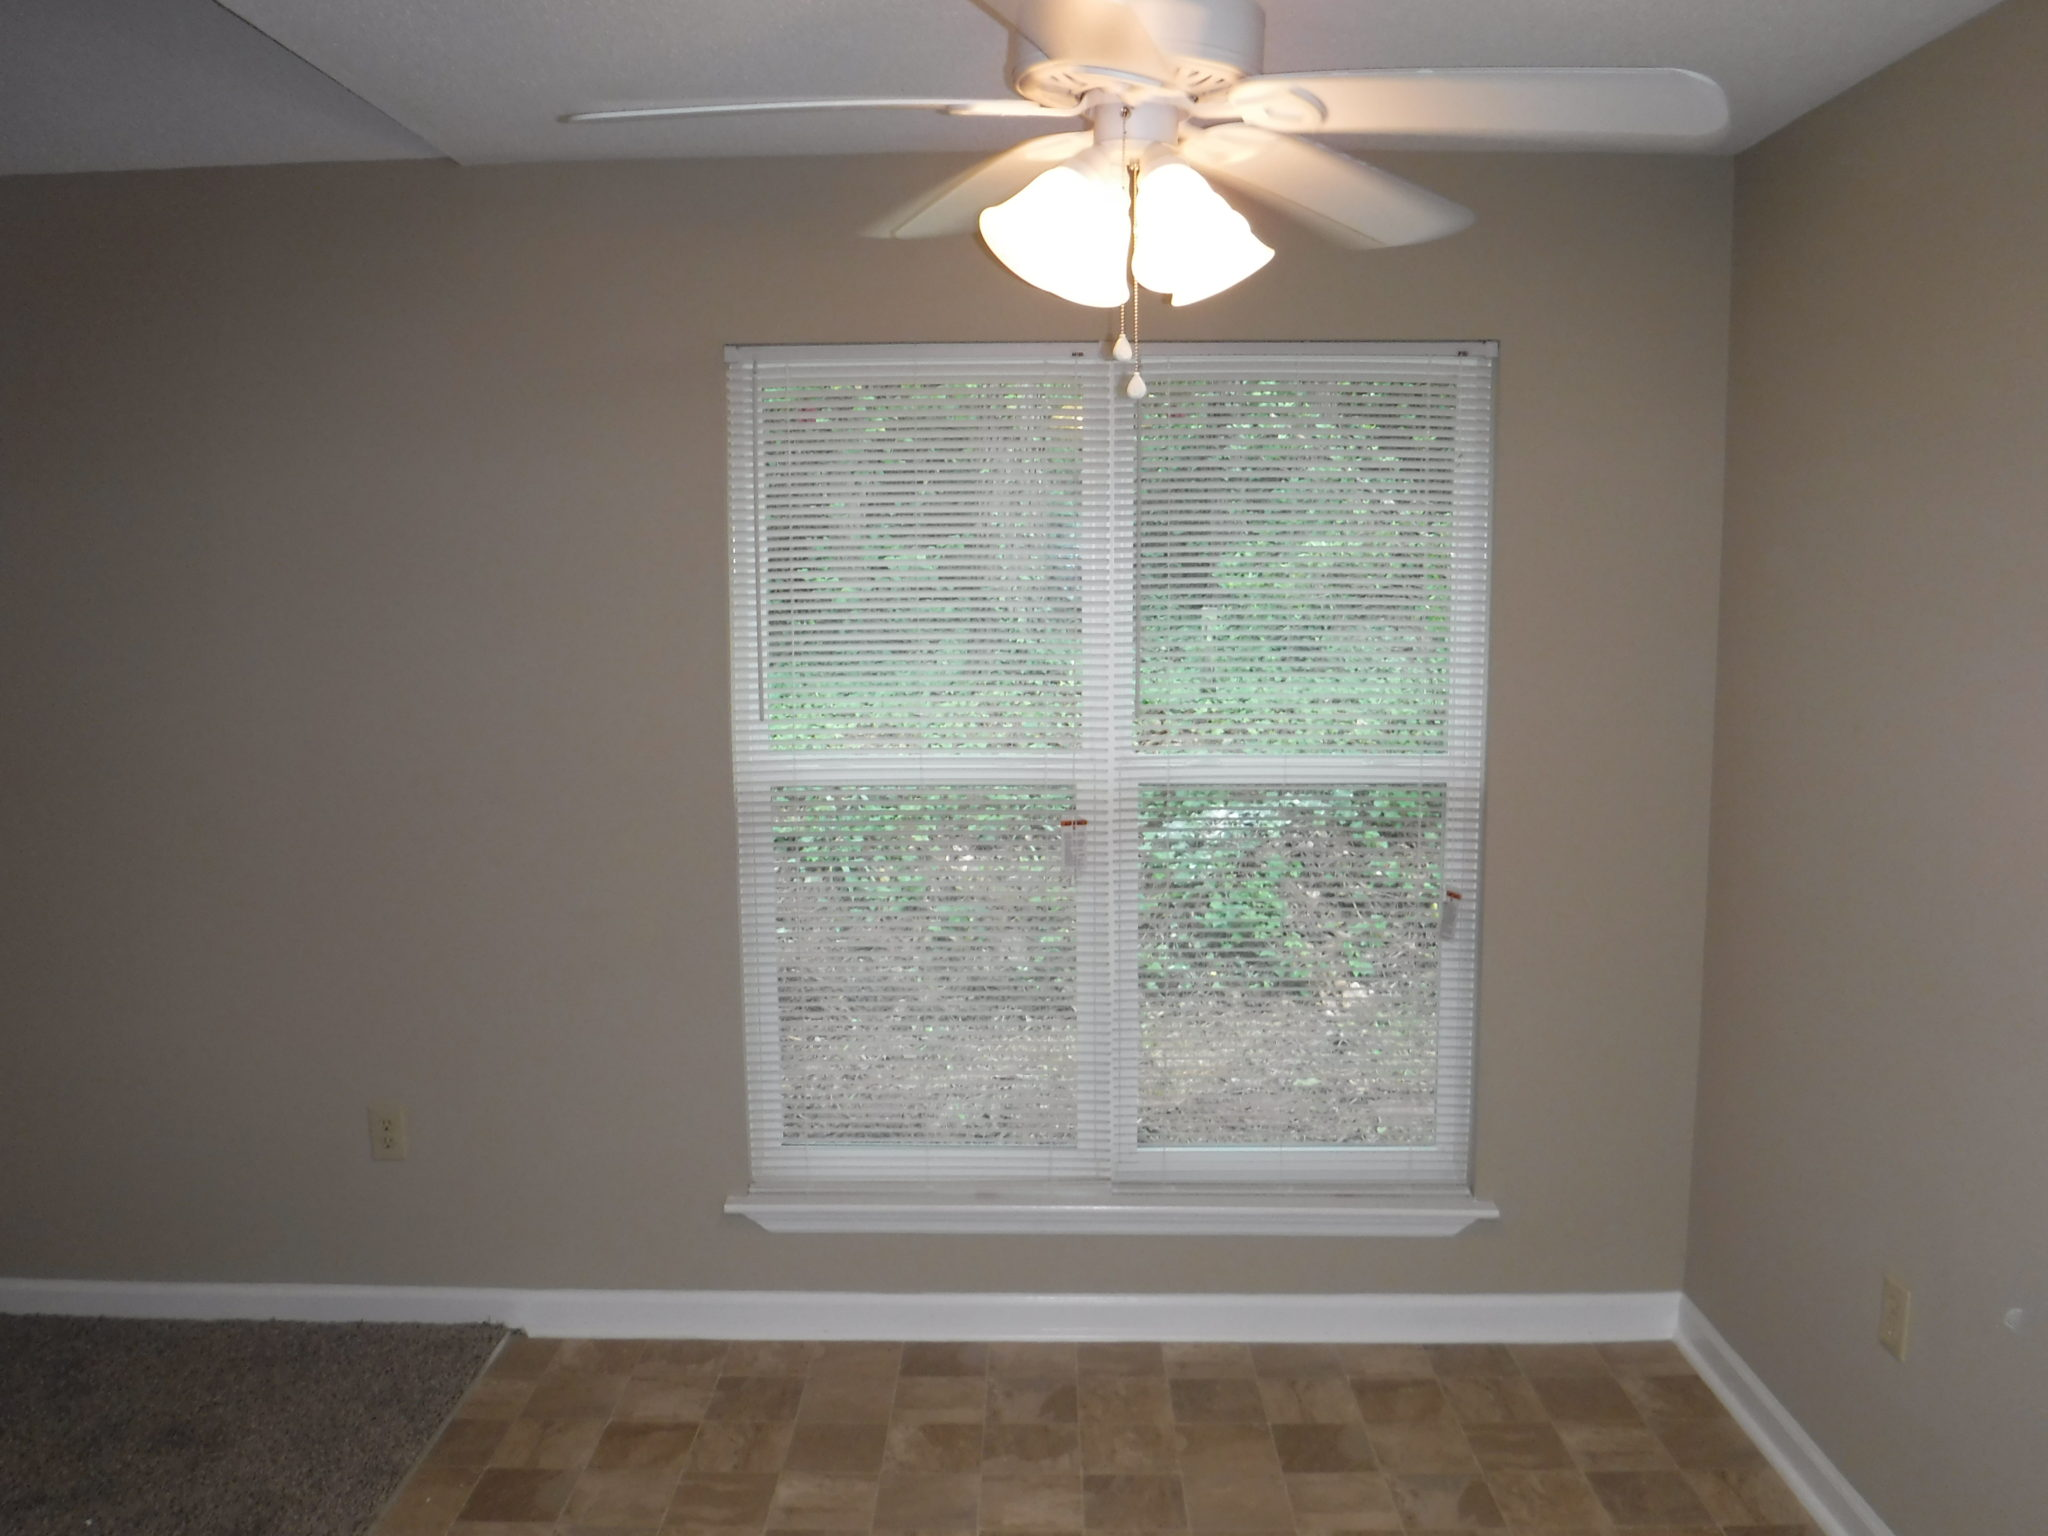 9 X 10 Dining Room With New Ceiling Fan And Double Windows